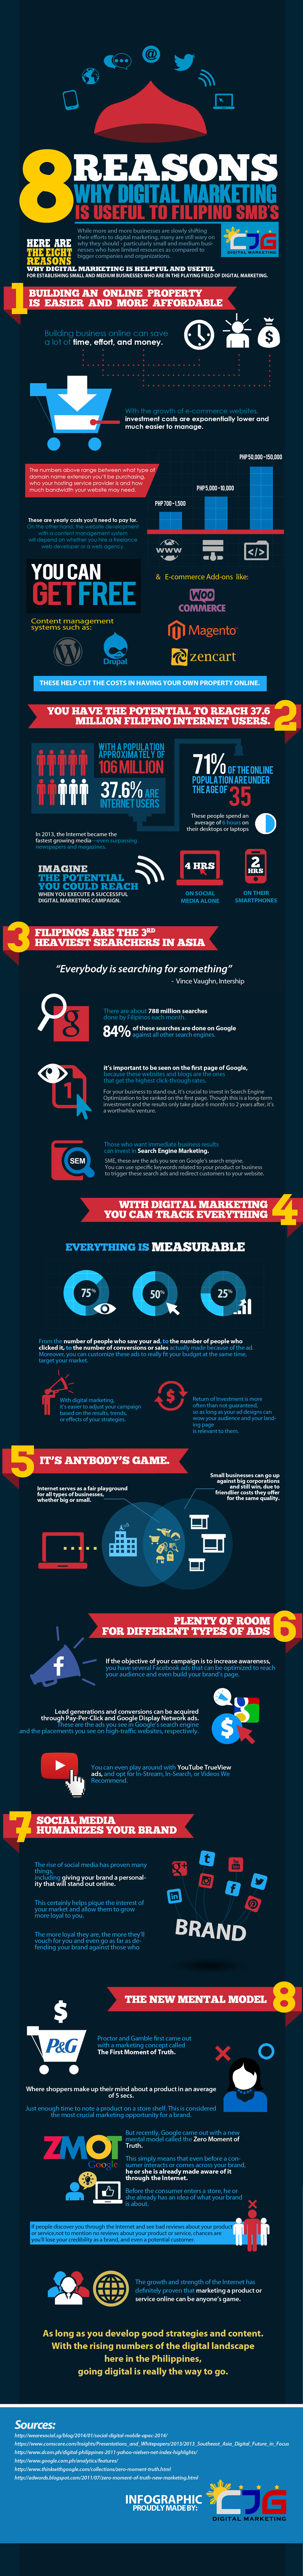 8-Reasons-Why-Digital-Marketing-is-Useful-to-SMB